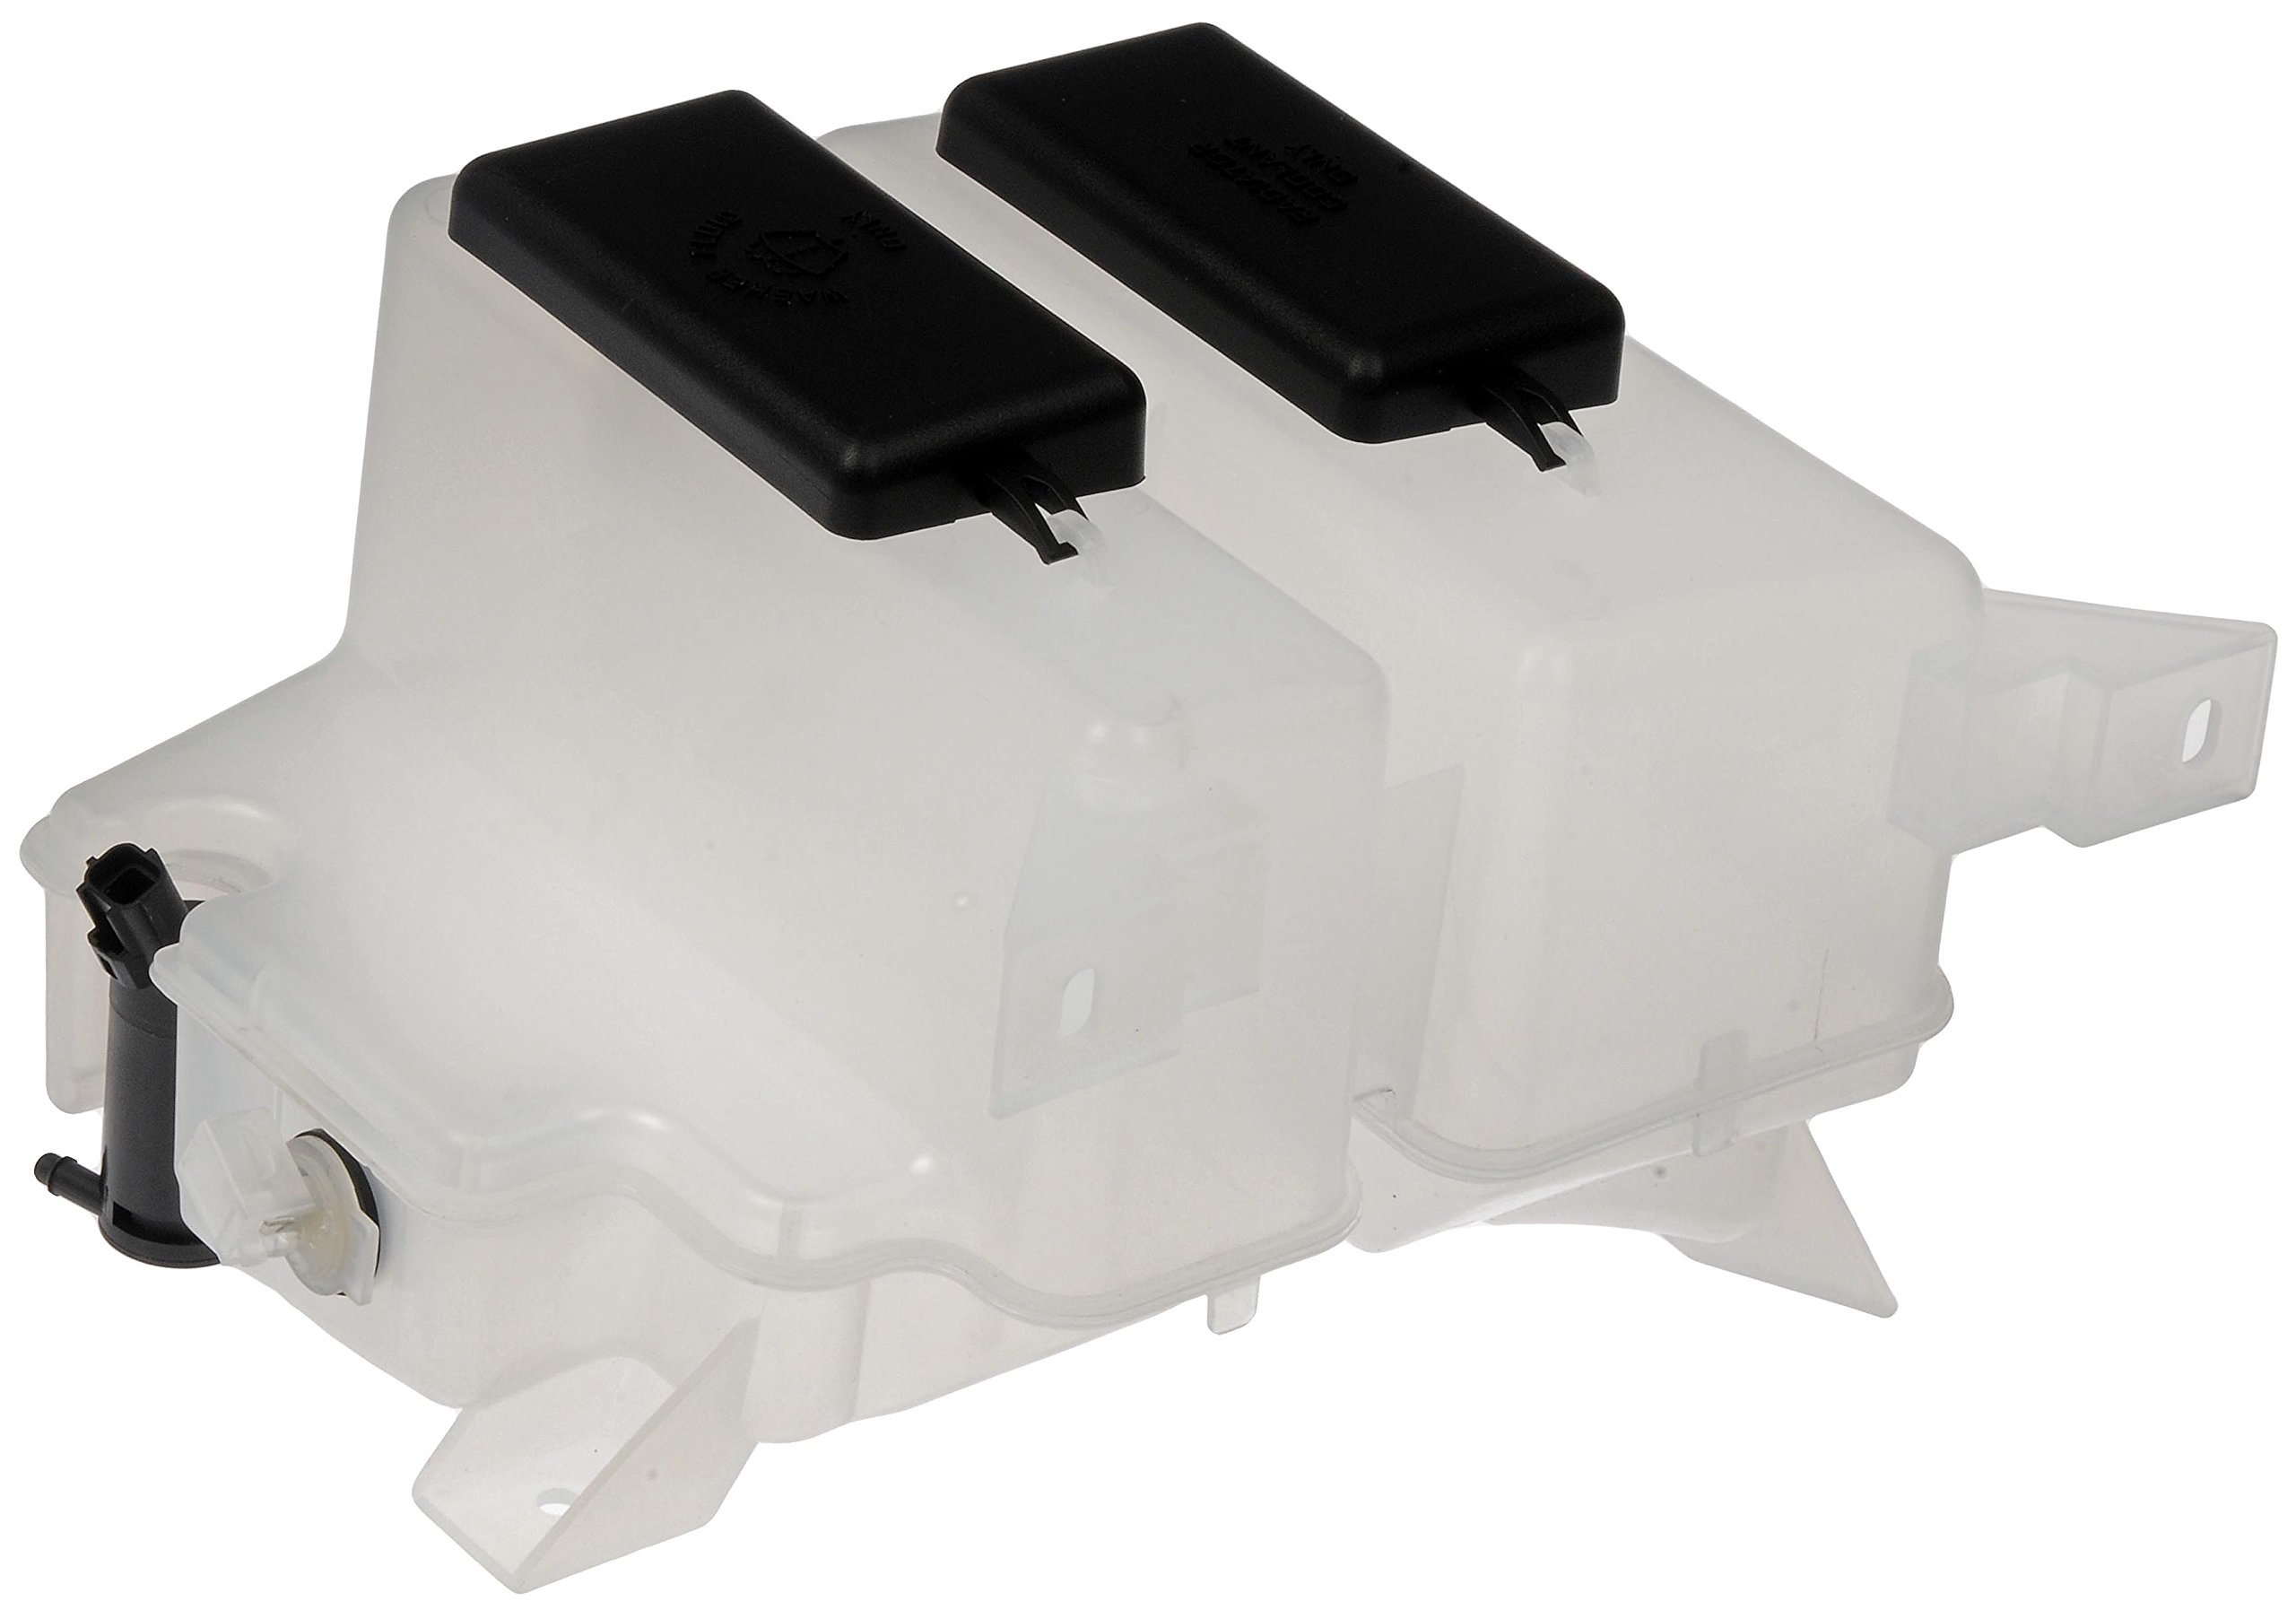 New Washer Fluid Reservoir For 2001-2007 Ford Ranger With Coolant Reservoir and Cap FO1288164 1996-2003 Explorer /& 1997-2001 Mercury Mountaineer